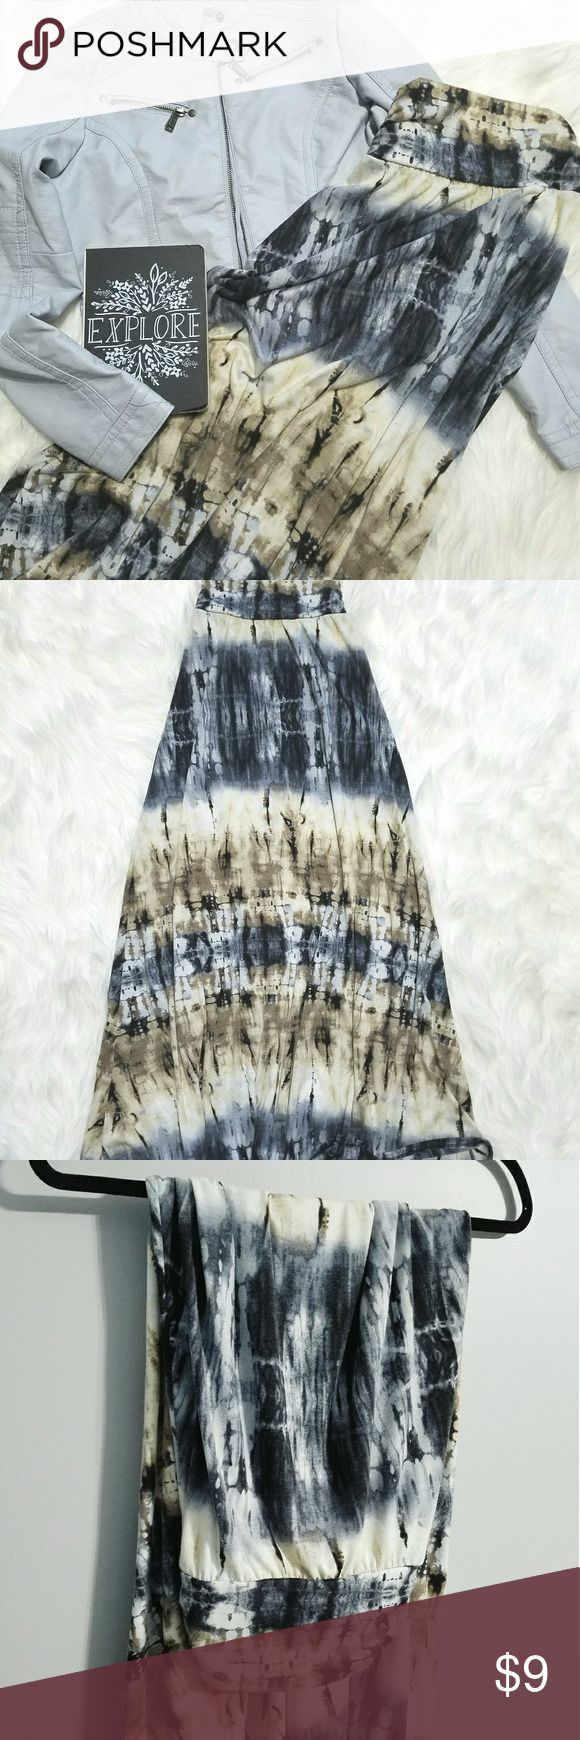 """Maxi Skirt Tie dye blue, cream and tan maxi skirt.   Size: XS  Condition: preowned with minor wear from wash and wearing, some pilling, see last pic  Measures: 12"""" waist, 40"""" length Joe B Skirts Maxi"""